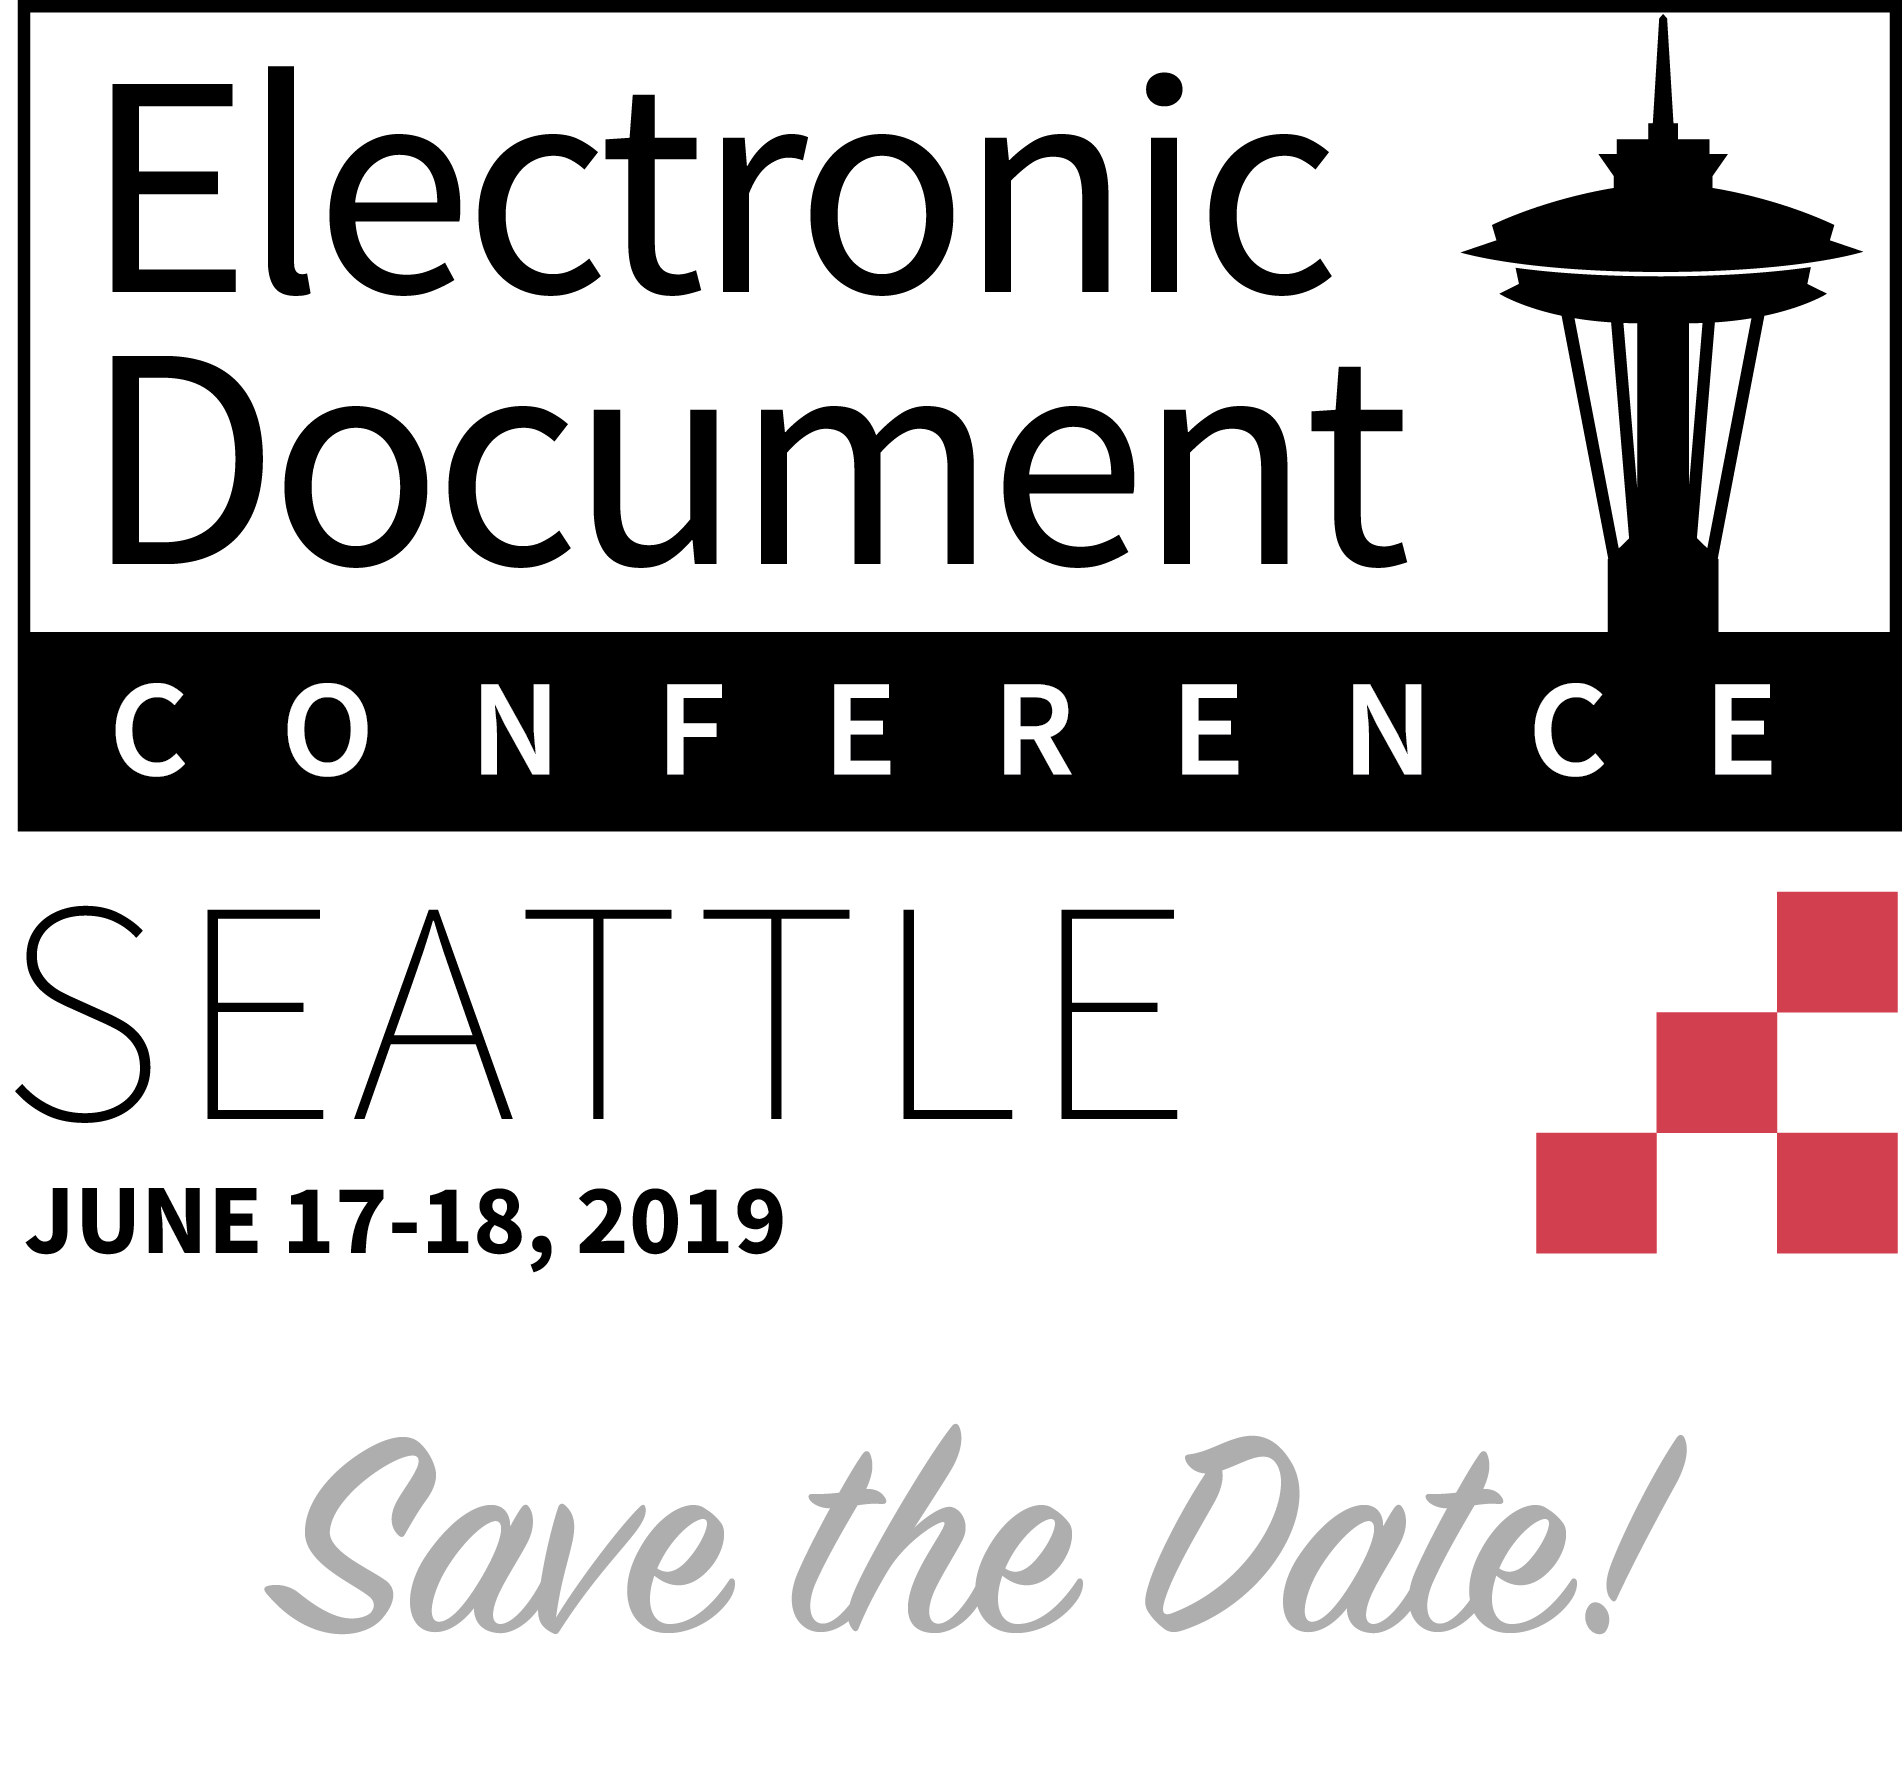 Electronic Document Conference logo.